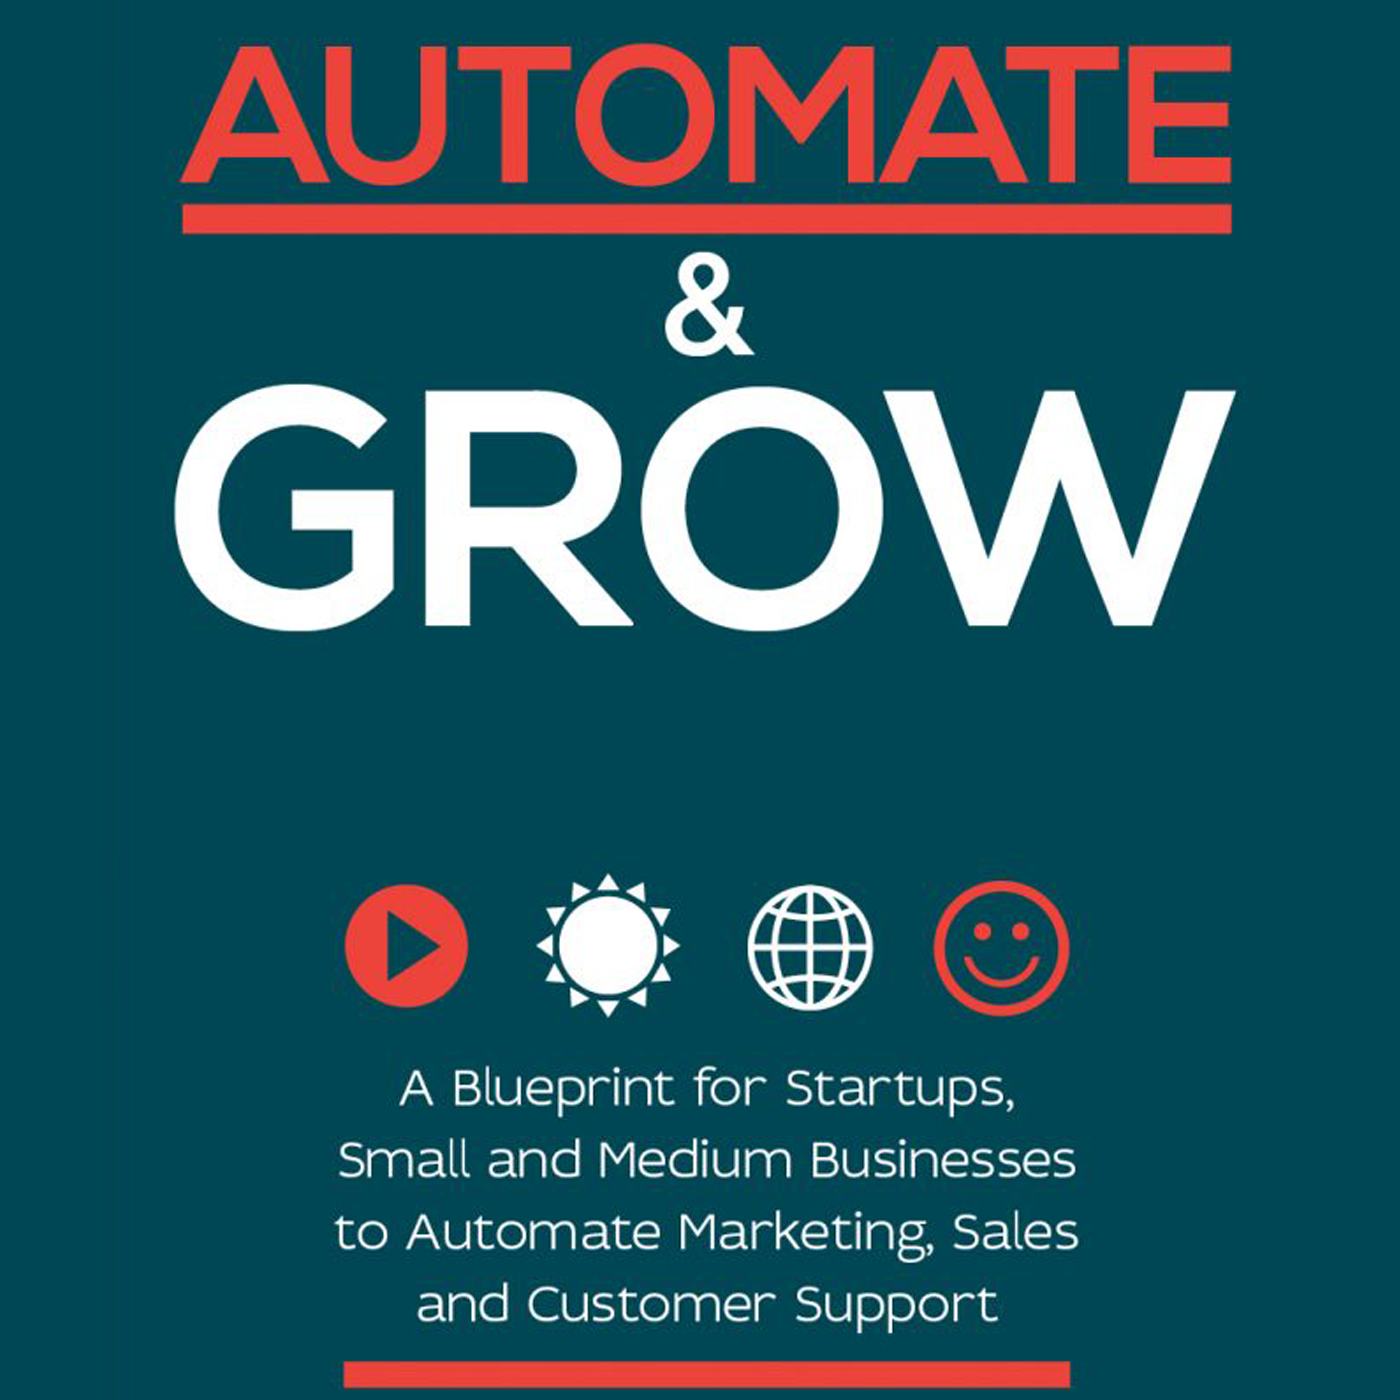 Automate and Grow